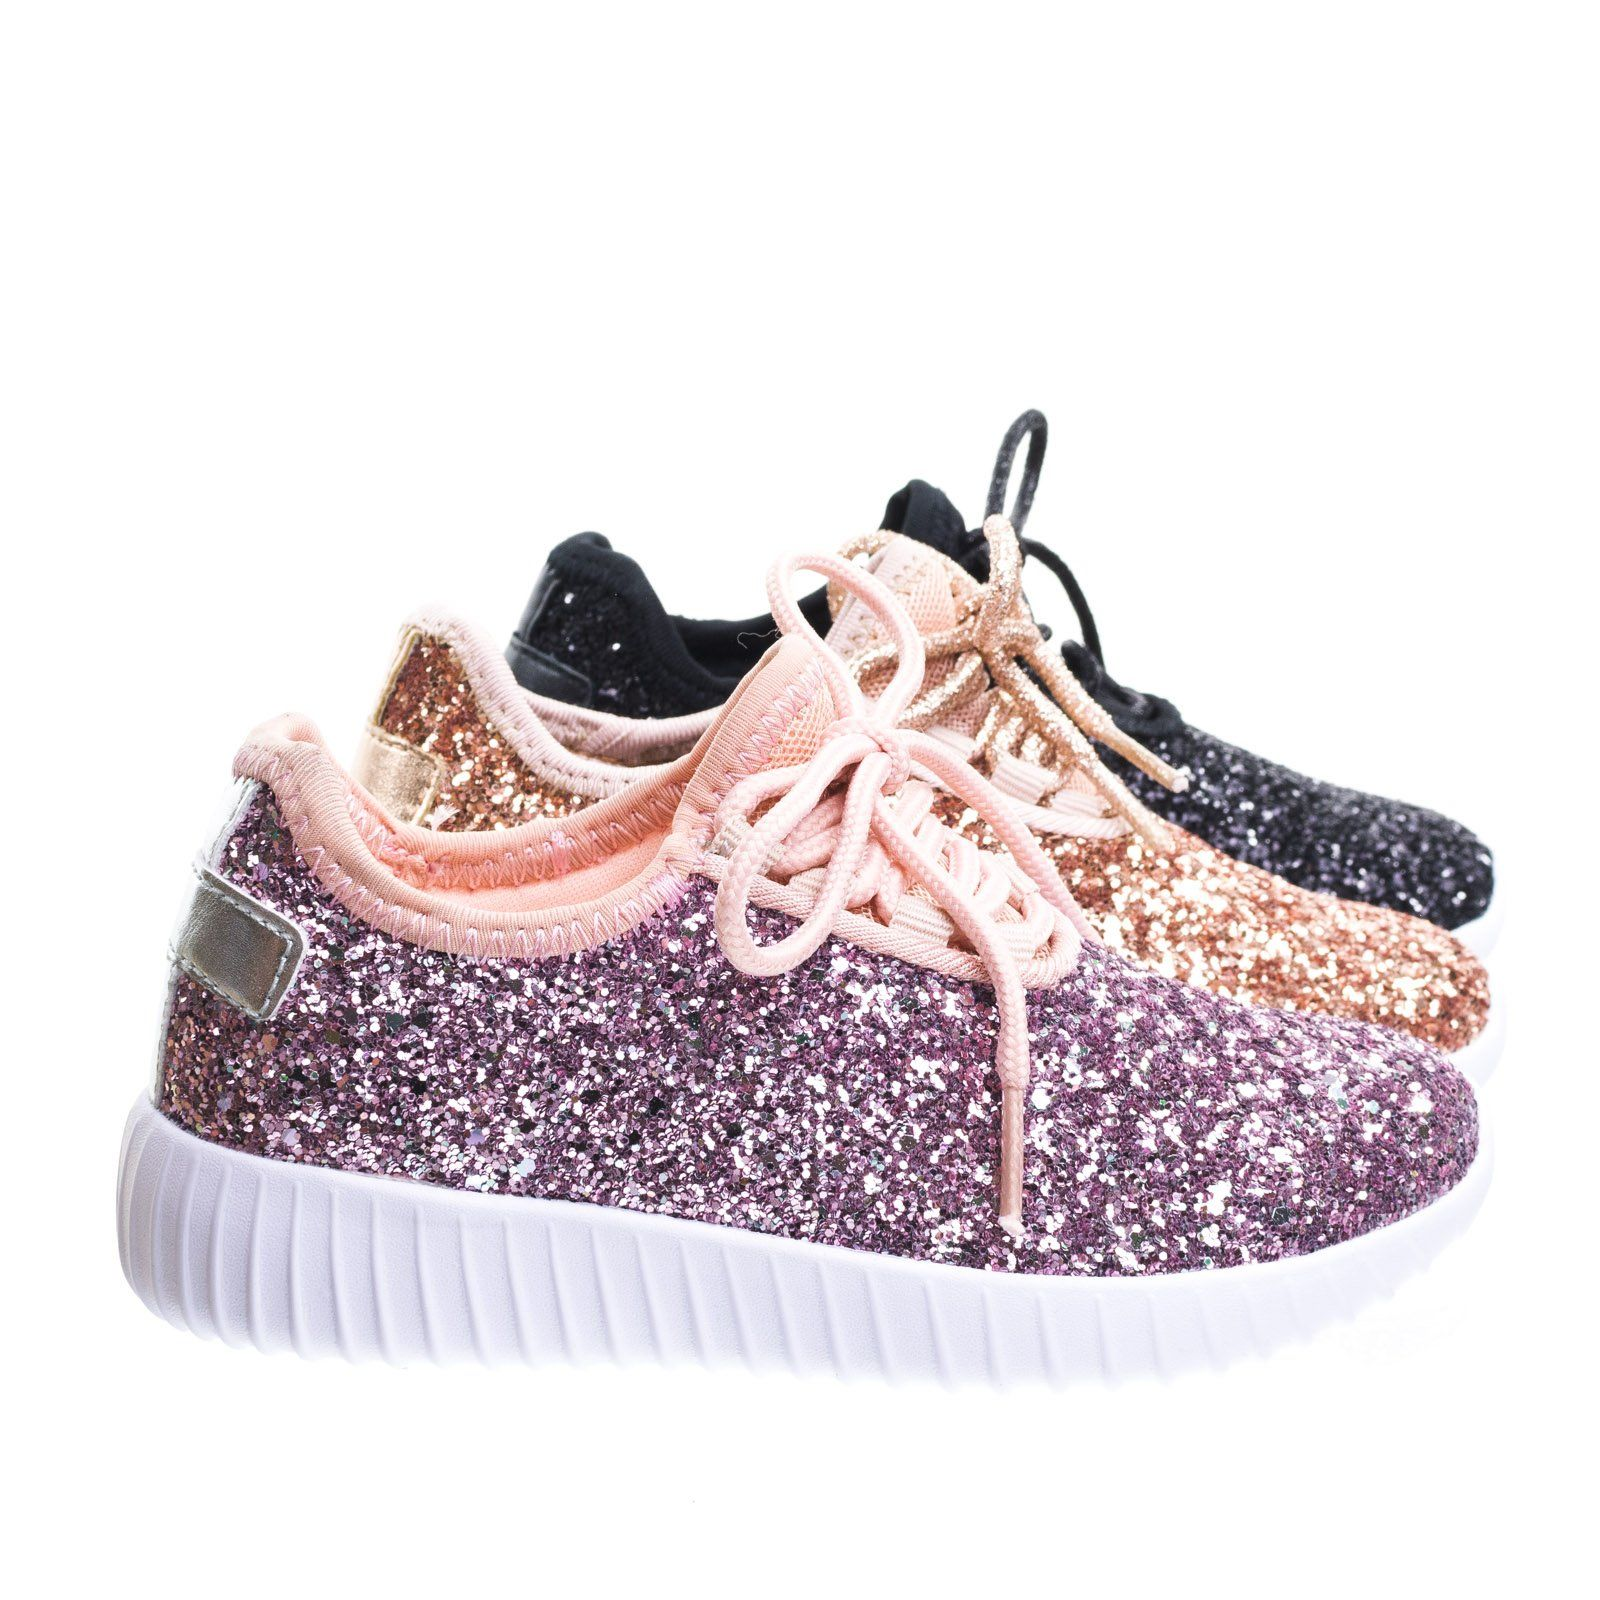 c5bdc6940ee Remy18k Lace up Rock Glitter Fashion Sneaker For Children / Girl ...